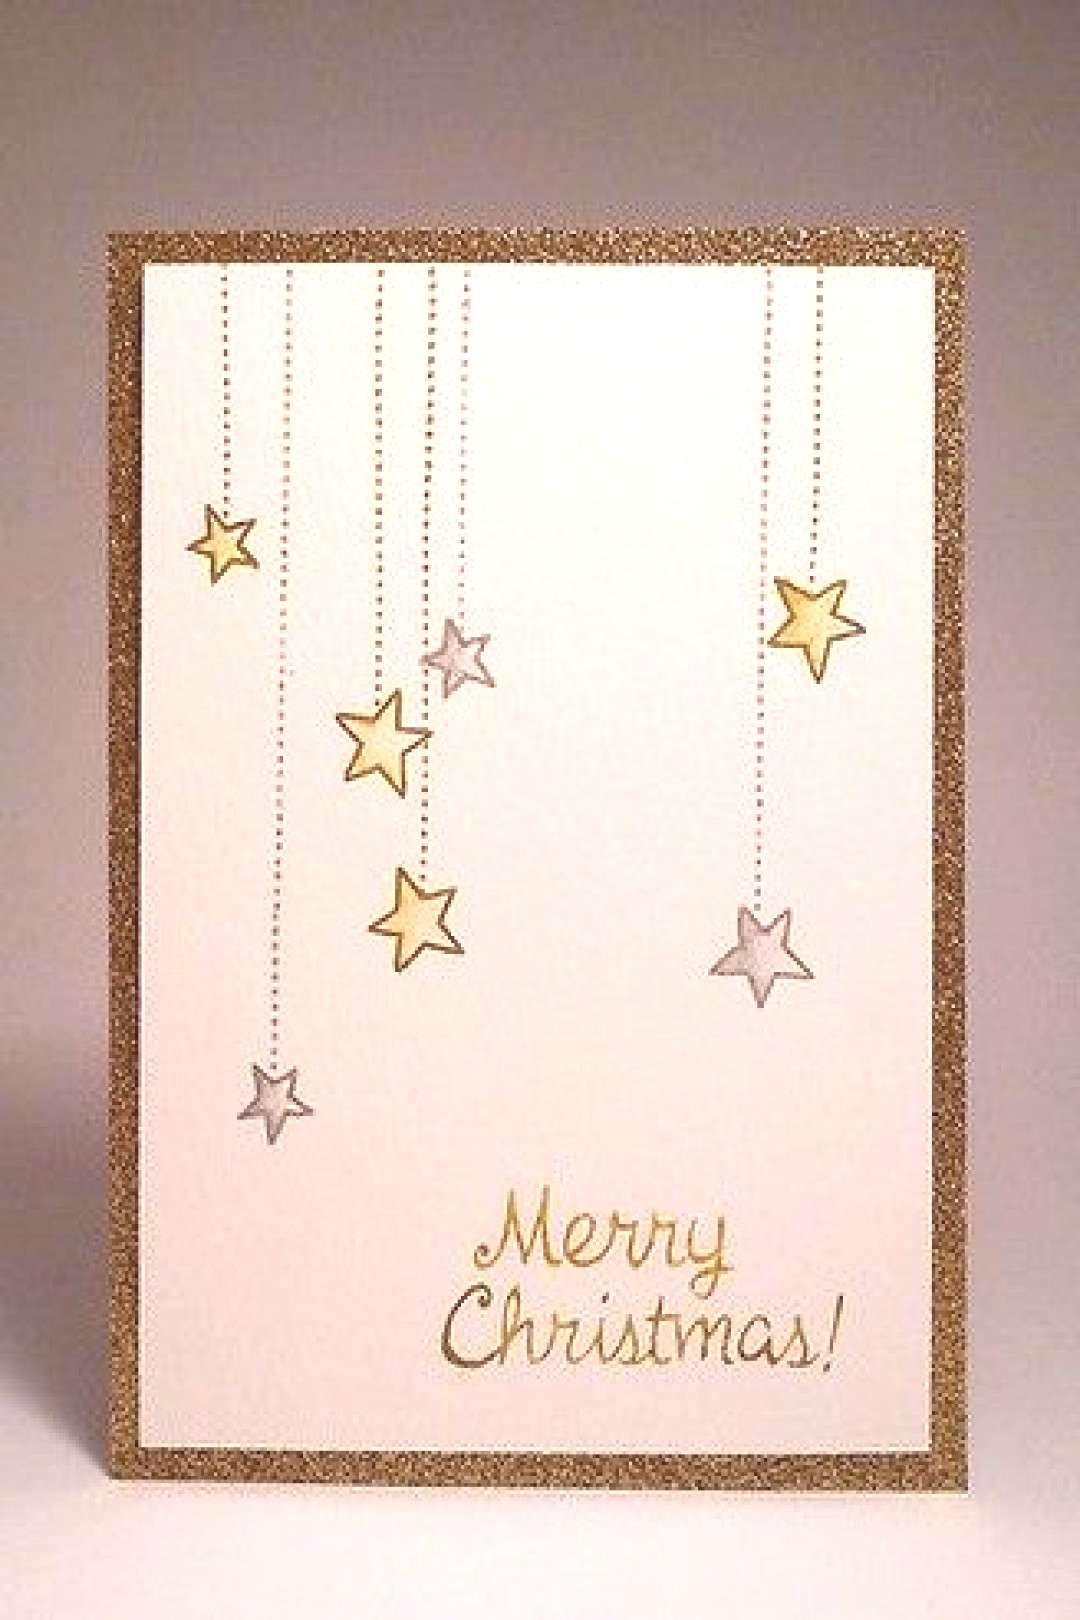 +20 Easy DIY Christmas Card Ideas You'll Want to Send This Season All the cards are created with